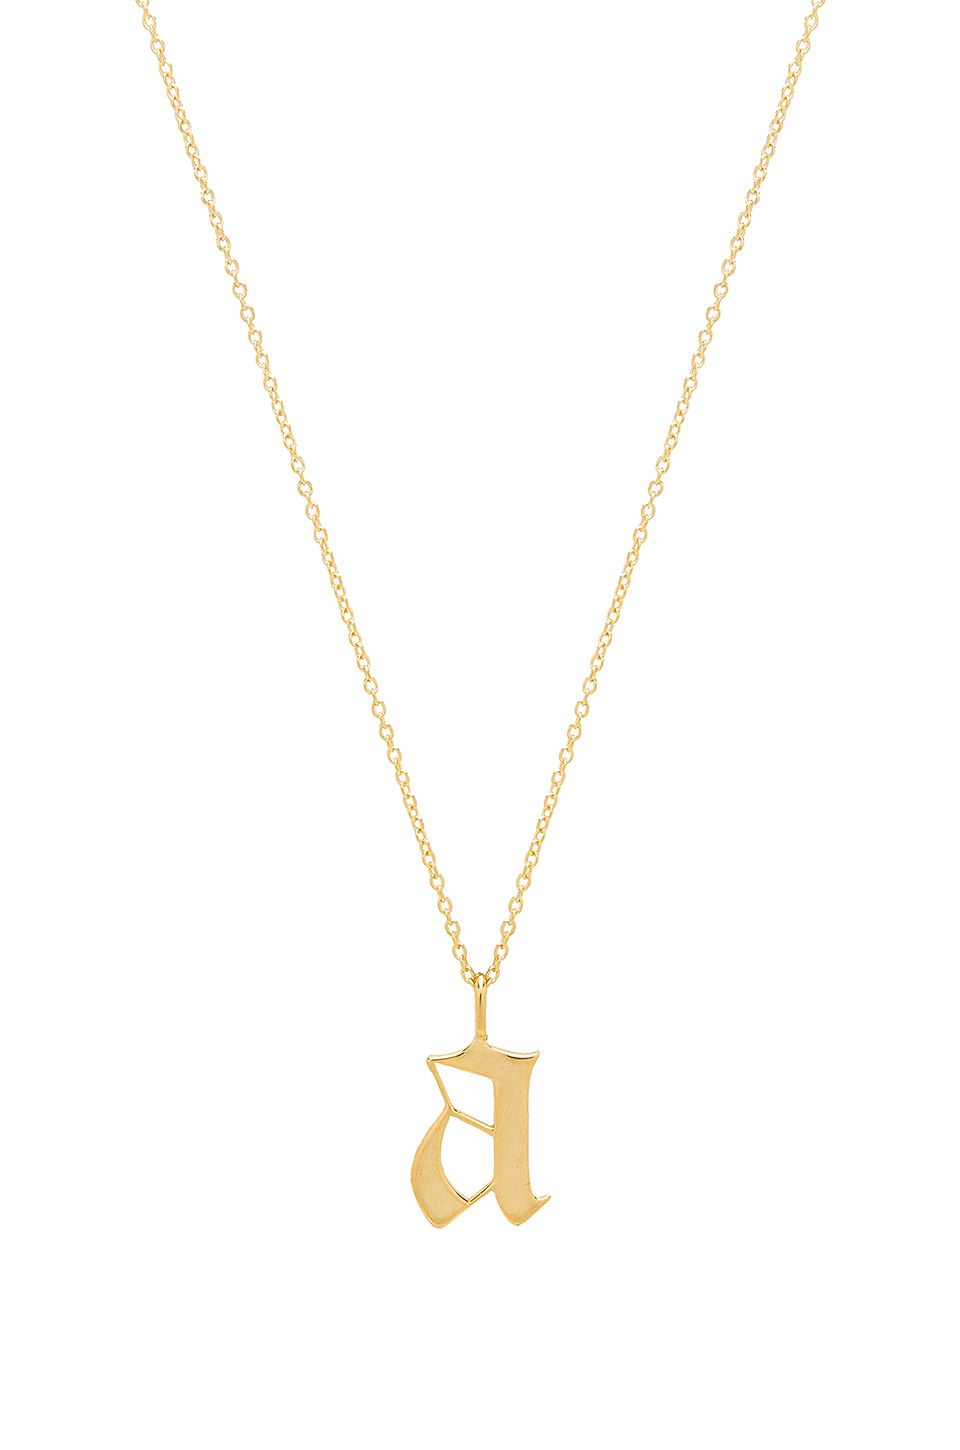 The Old English Pendant in Metallic Gold The M Jewelers NY tj8QS